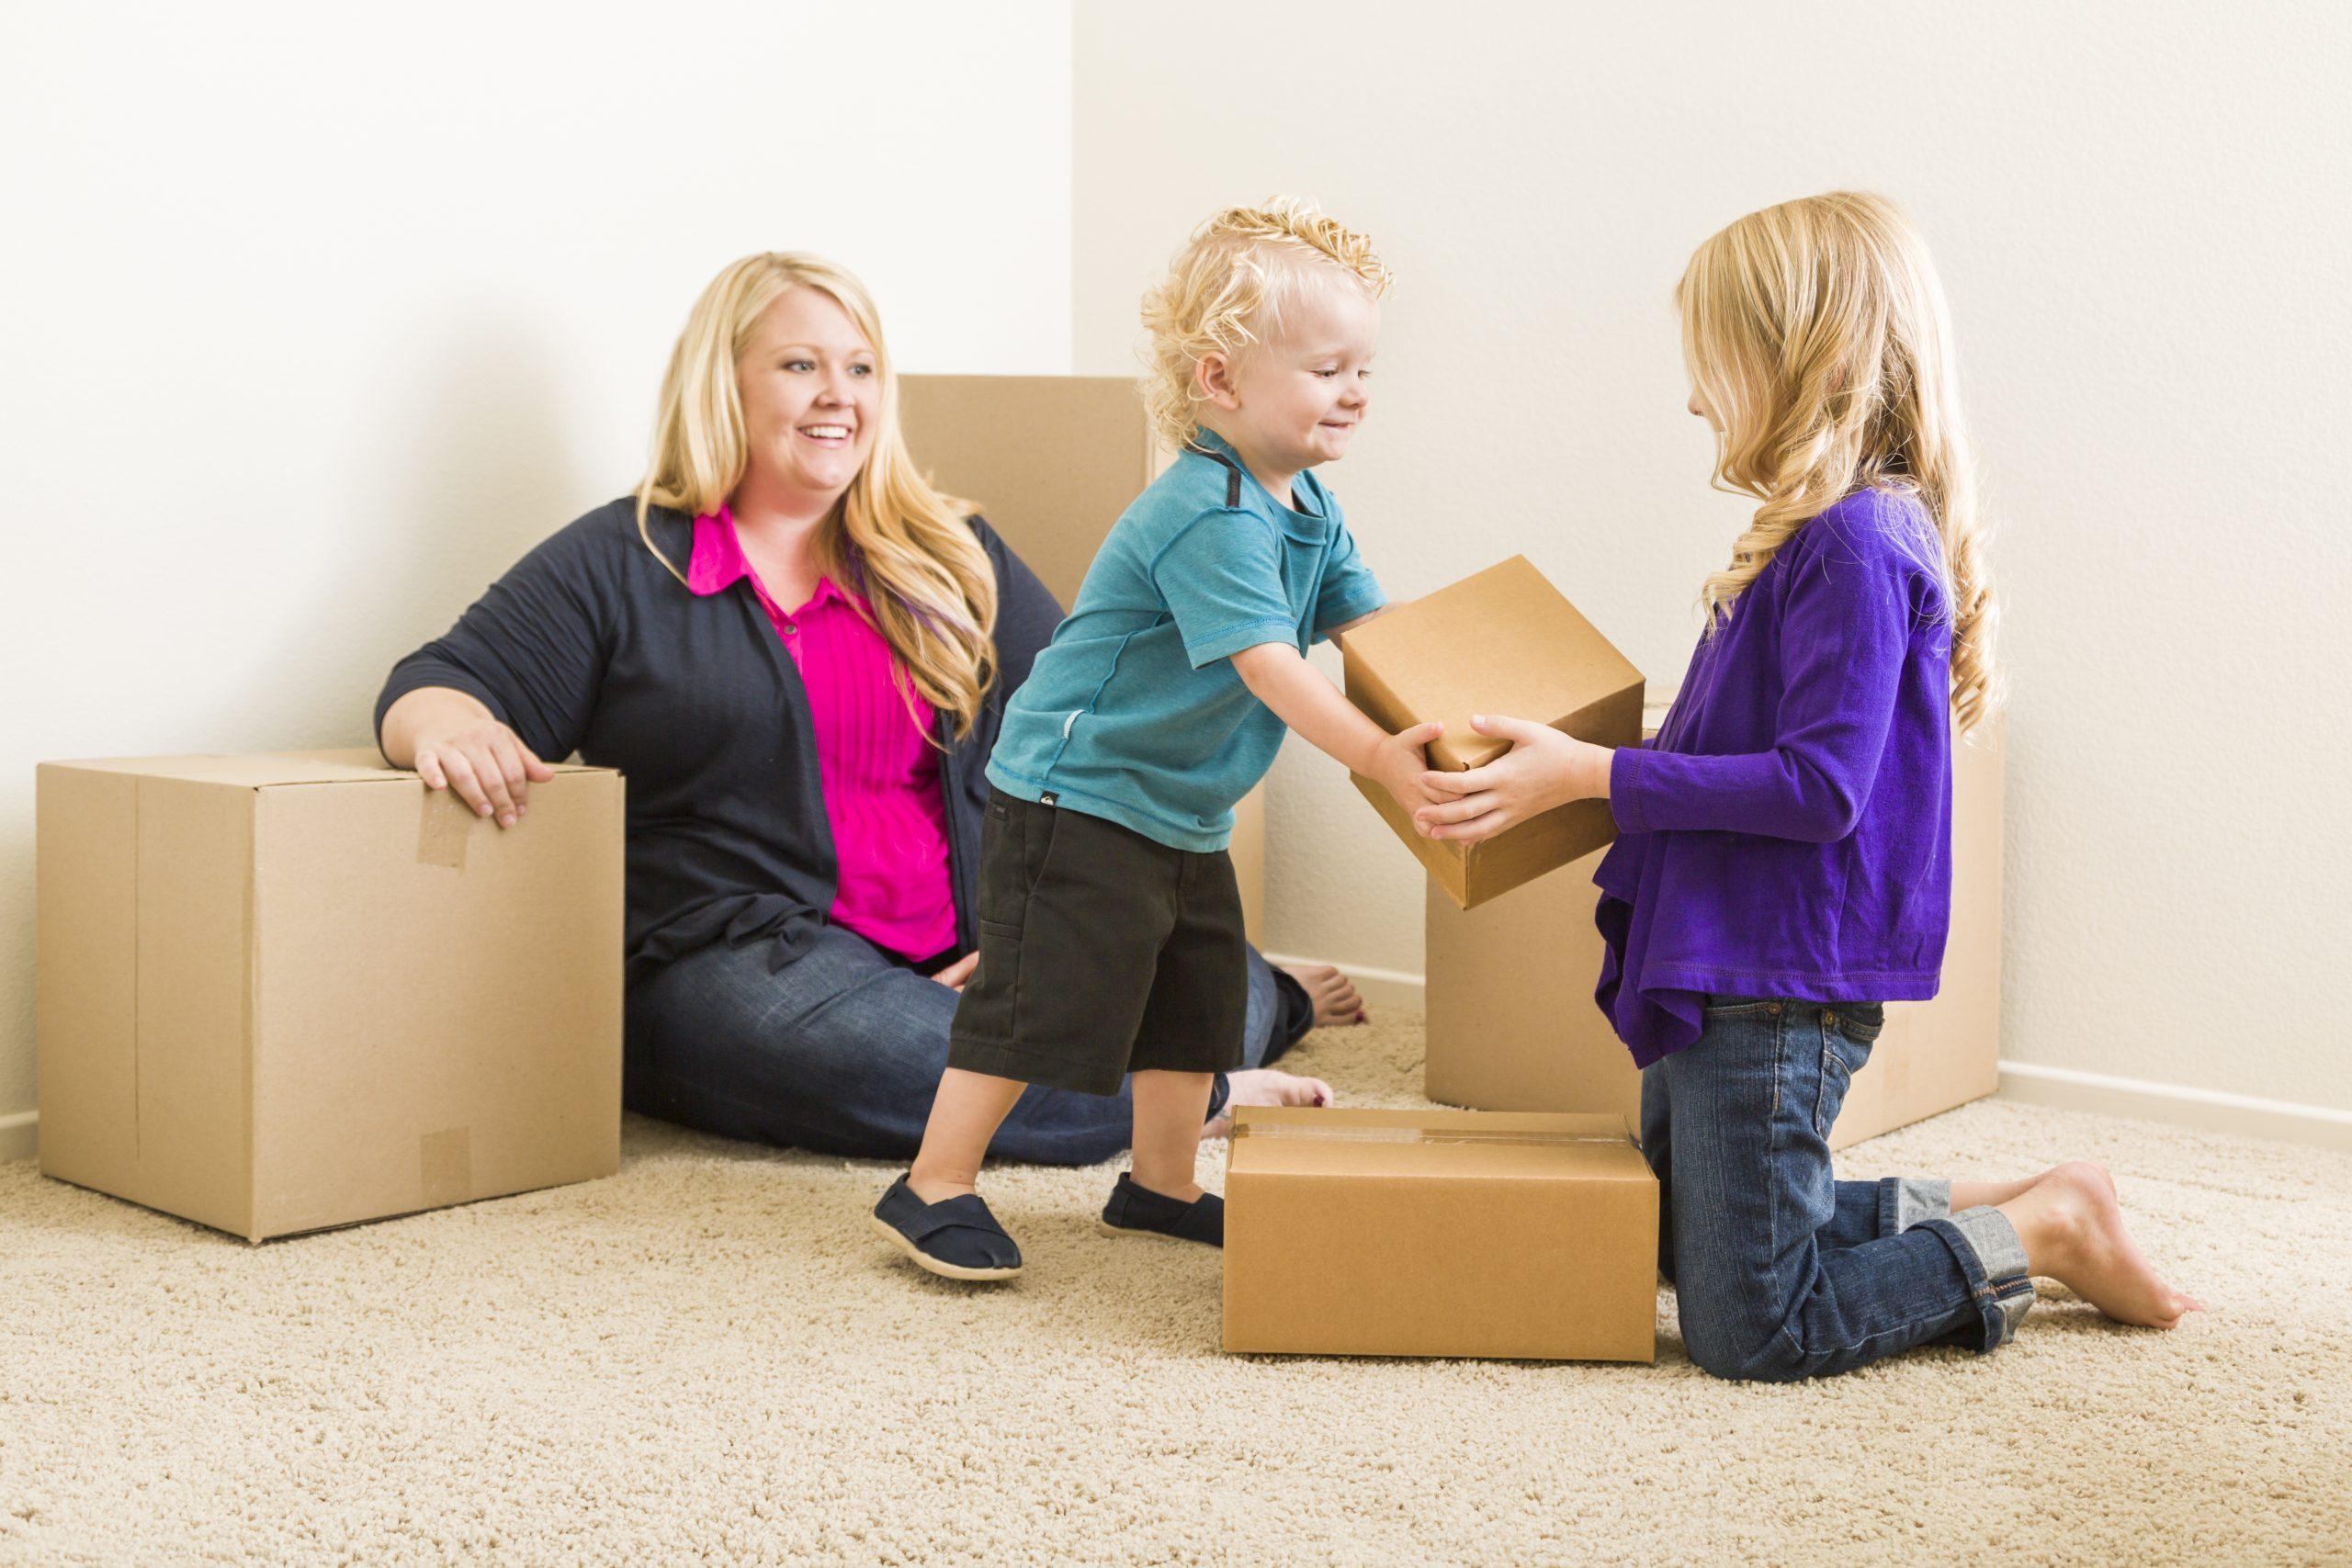 Happy Young Family in Empty Room With Moving Boxes.